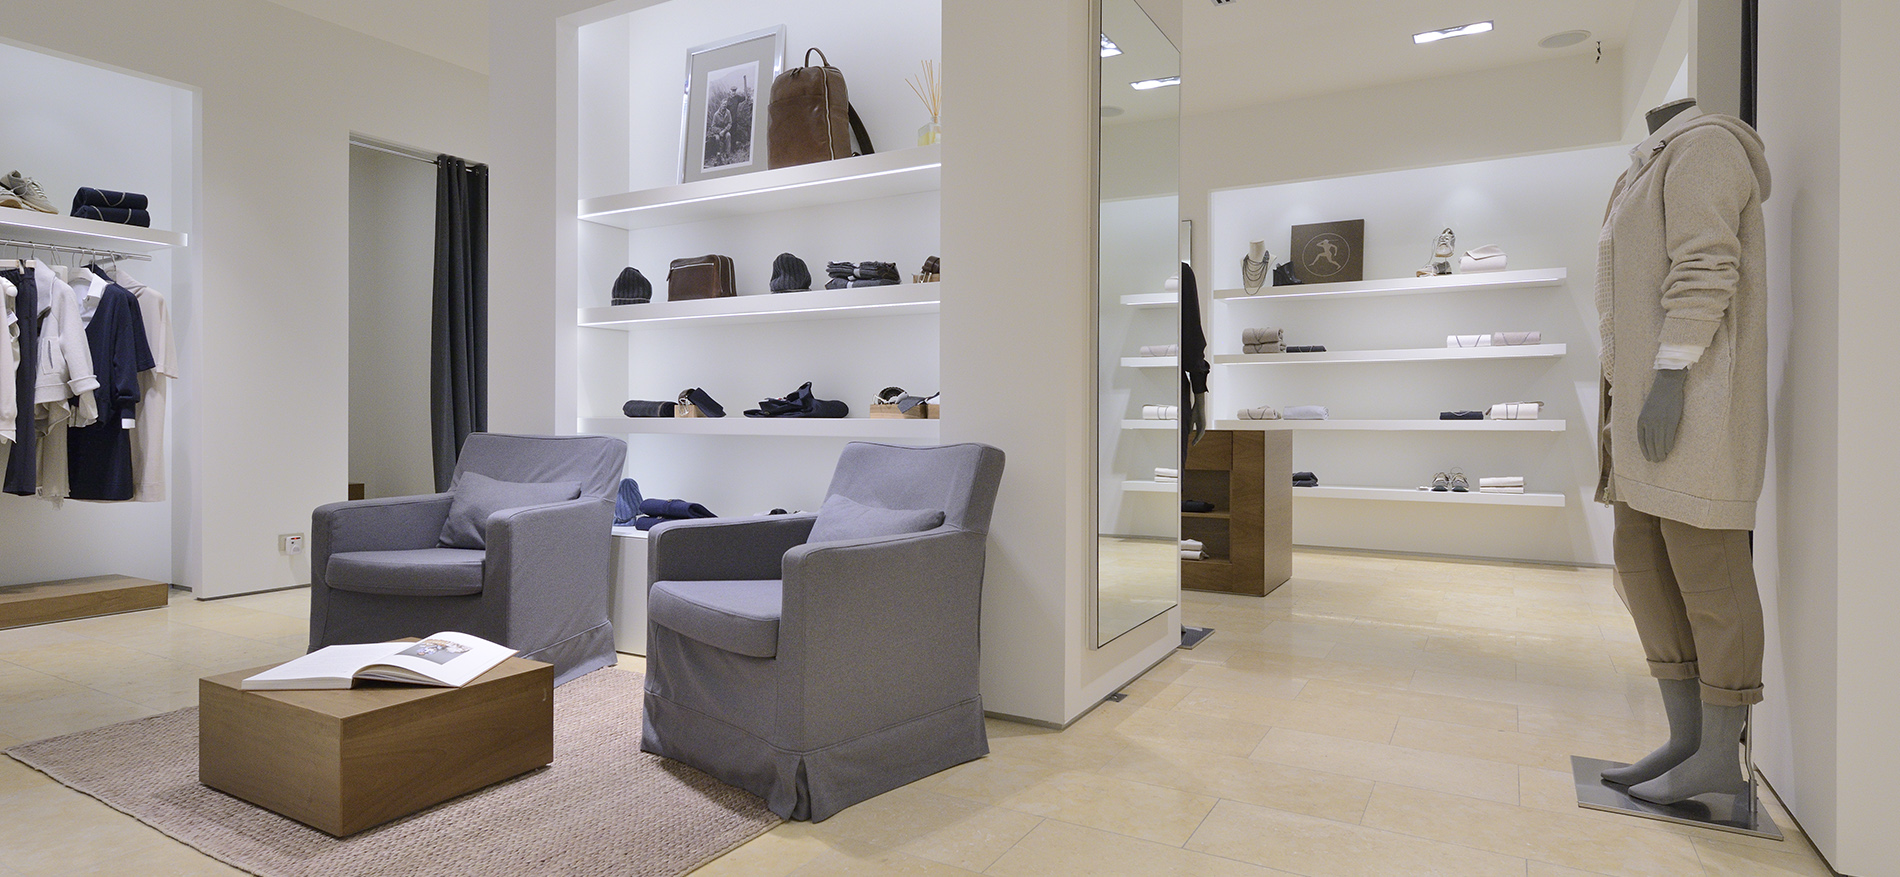 Agencement int rieur pour la boutique de mode for Agencement interieur